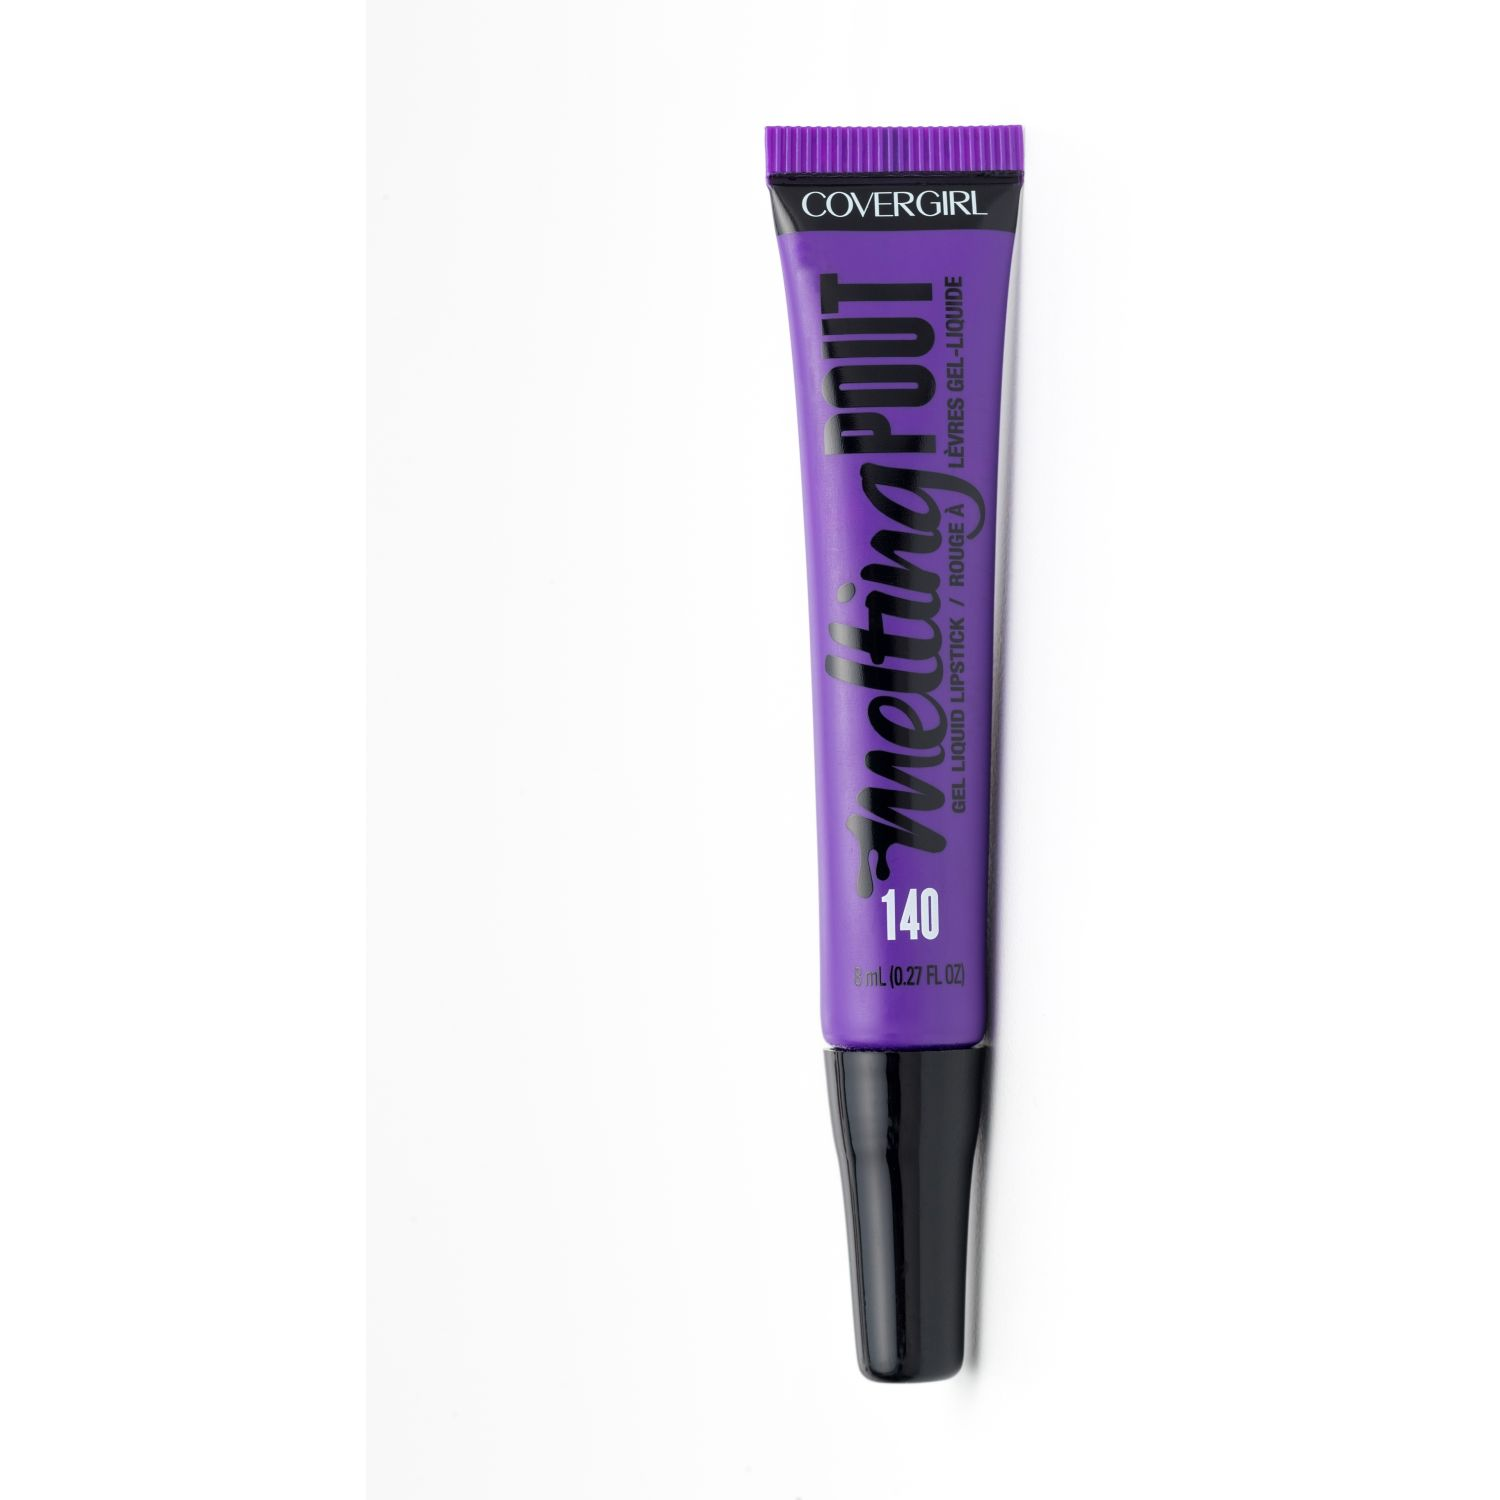 Covergirl Labial Melting Pout Gellie Jelly Lápices labiales